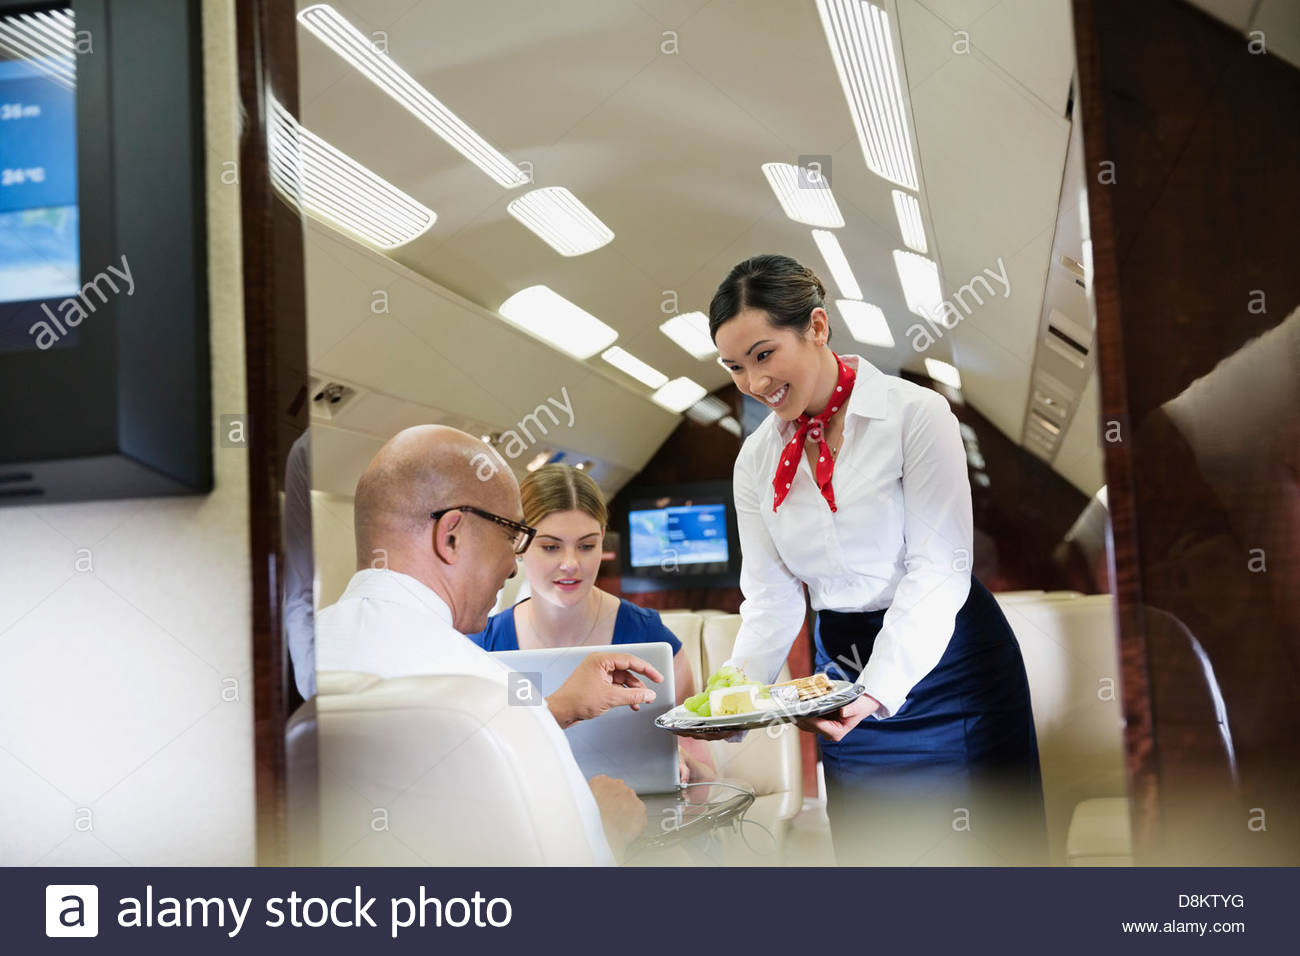 Flight Attendant Serving Food To Business Colleagues In